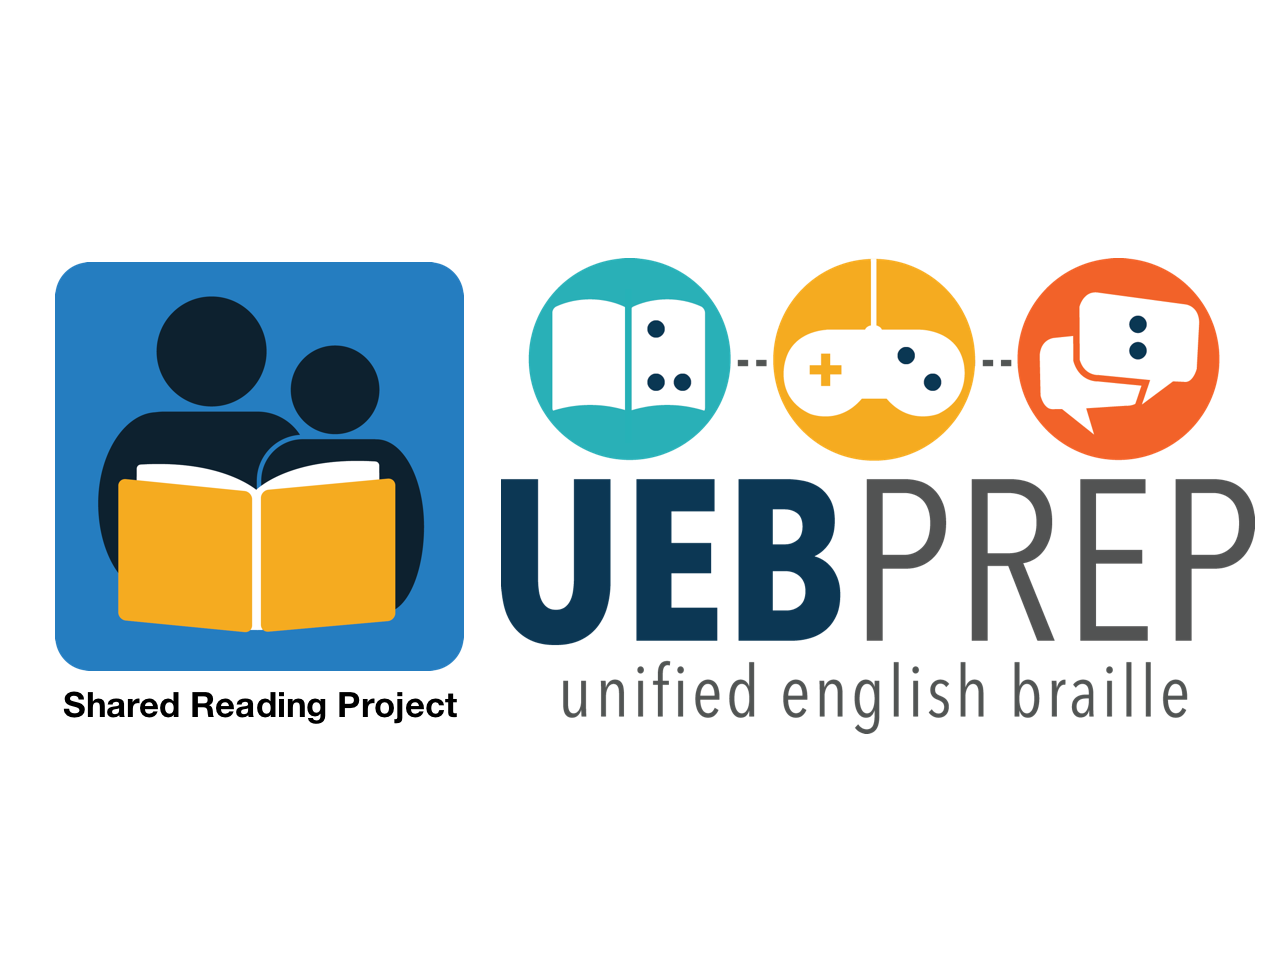 Shared reading and ueb prep project logos